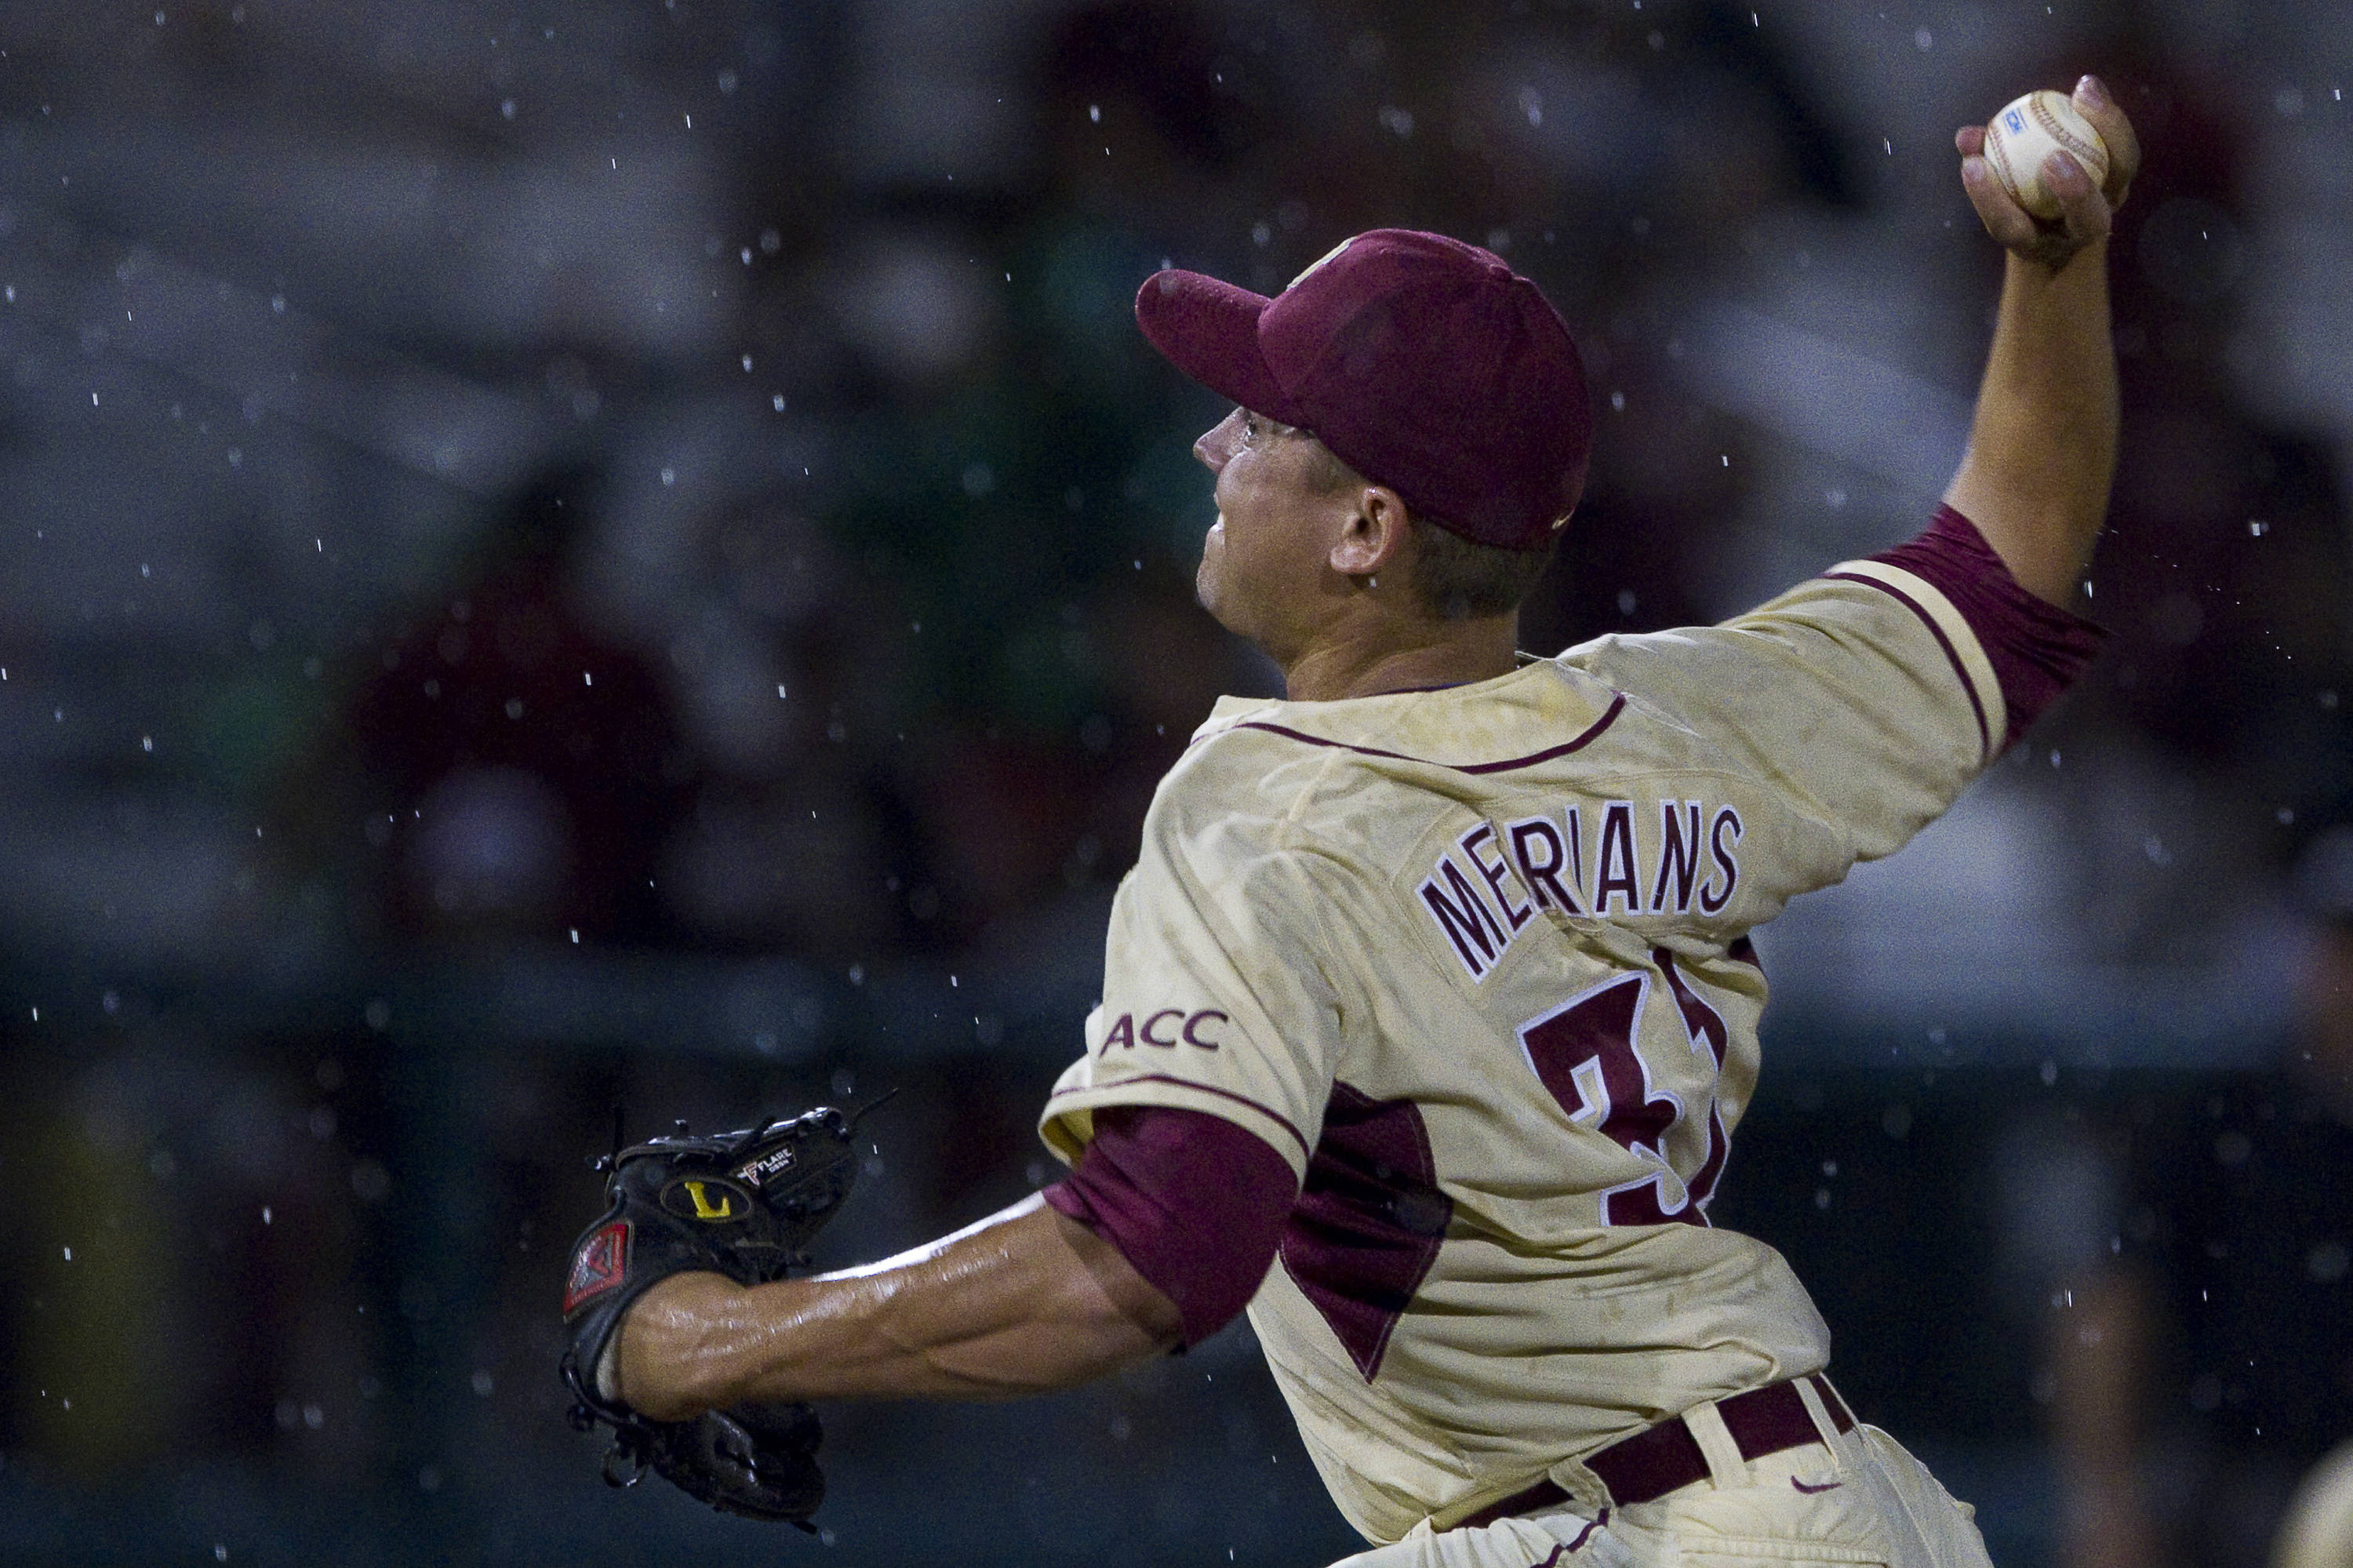 Gary Merians (31) pitches in the rain in the 8th inning.